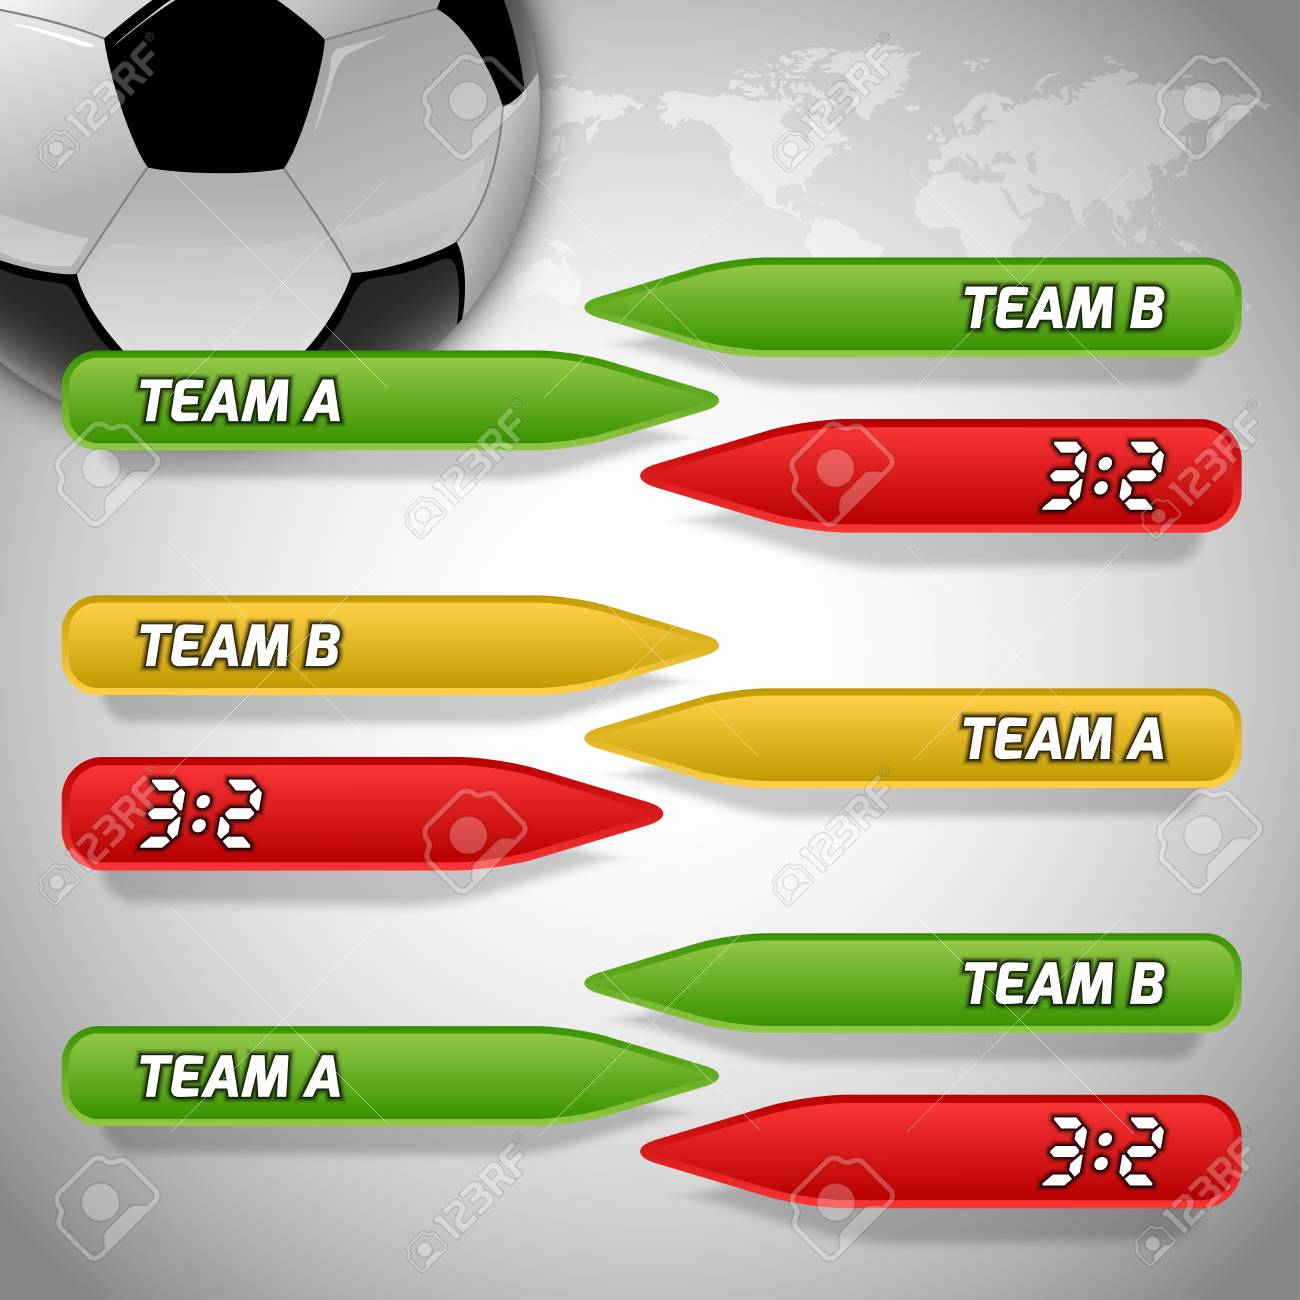 00788f4e1 Soccer symbol Football with buttons for score information Gray background  with world symbol Stock Vector -